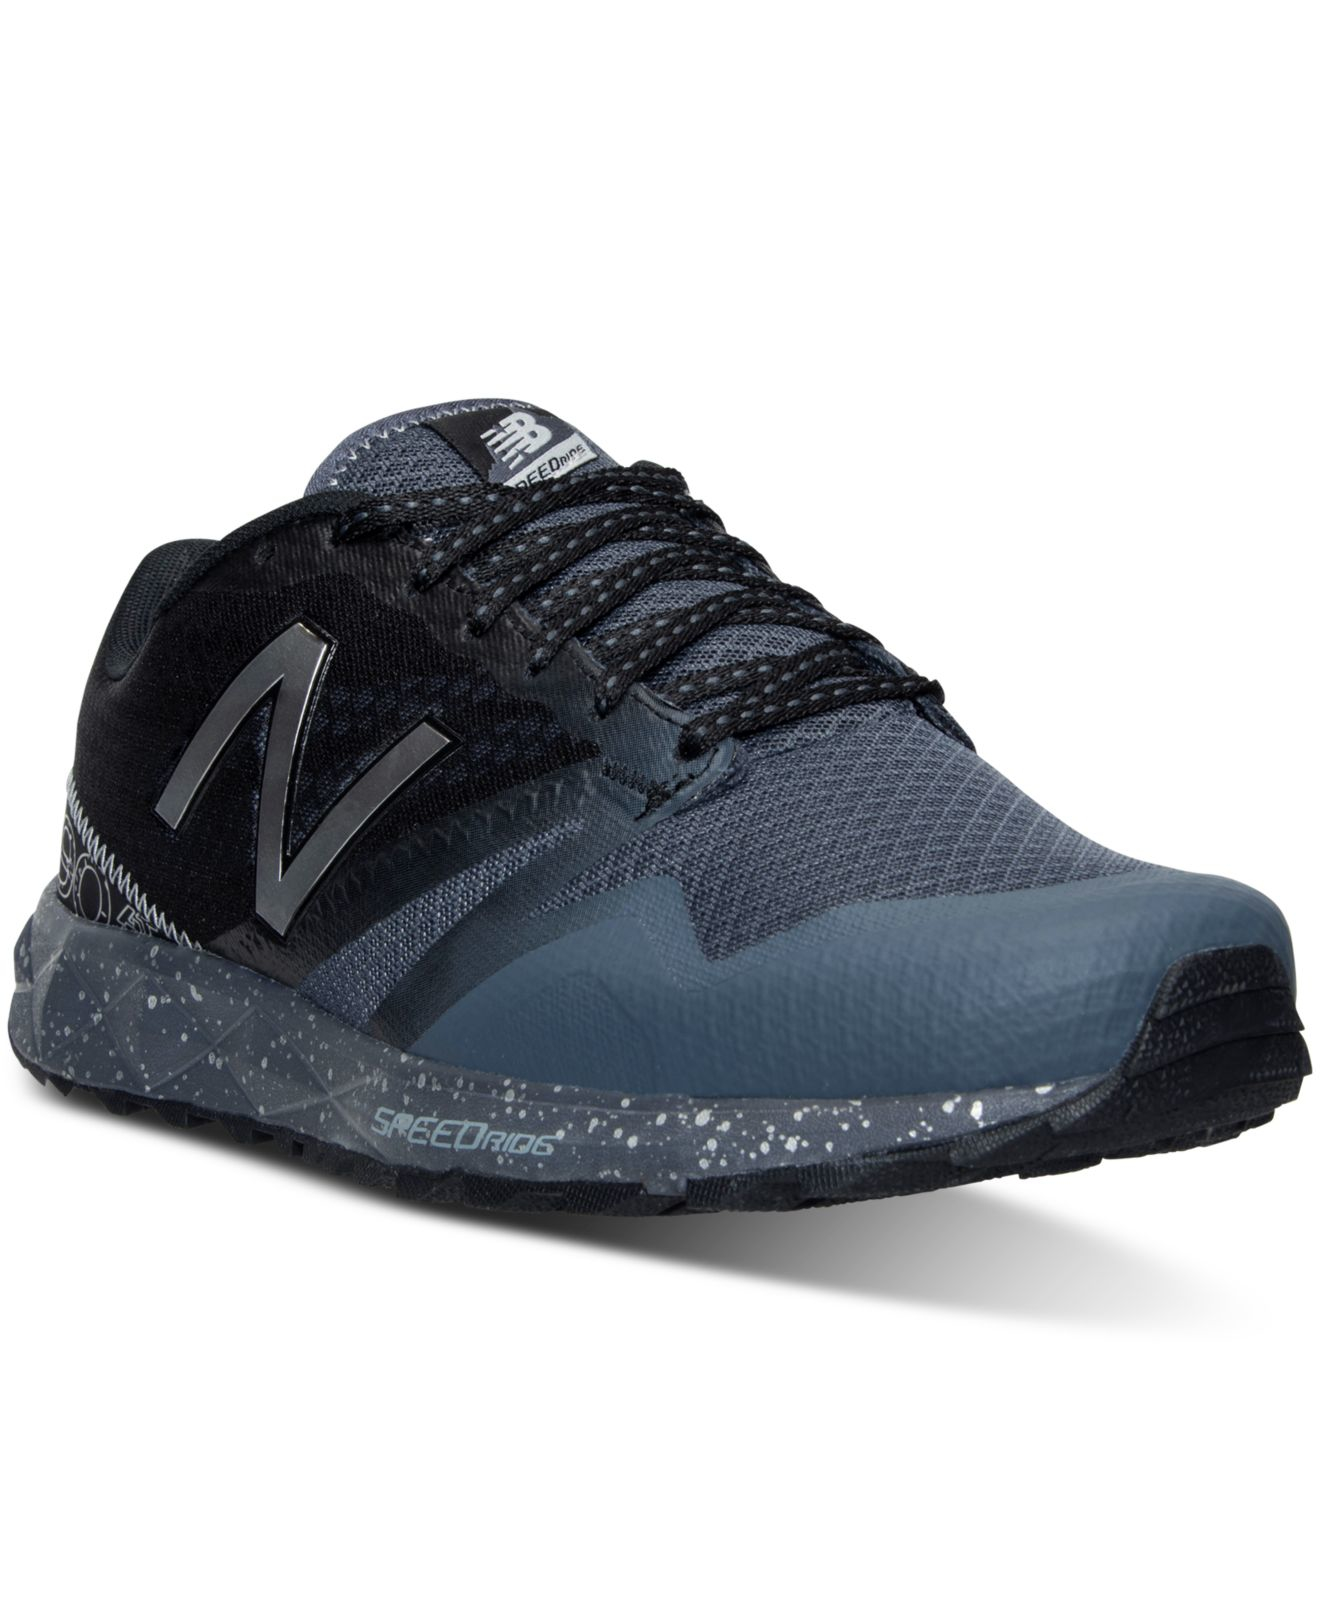 new balance men 39 s 690 wide running sneakers from finish line in gray for men lyst. Black Bedroom Furniture Sets. Home Design Ideas